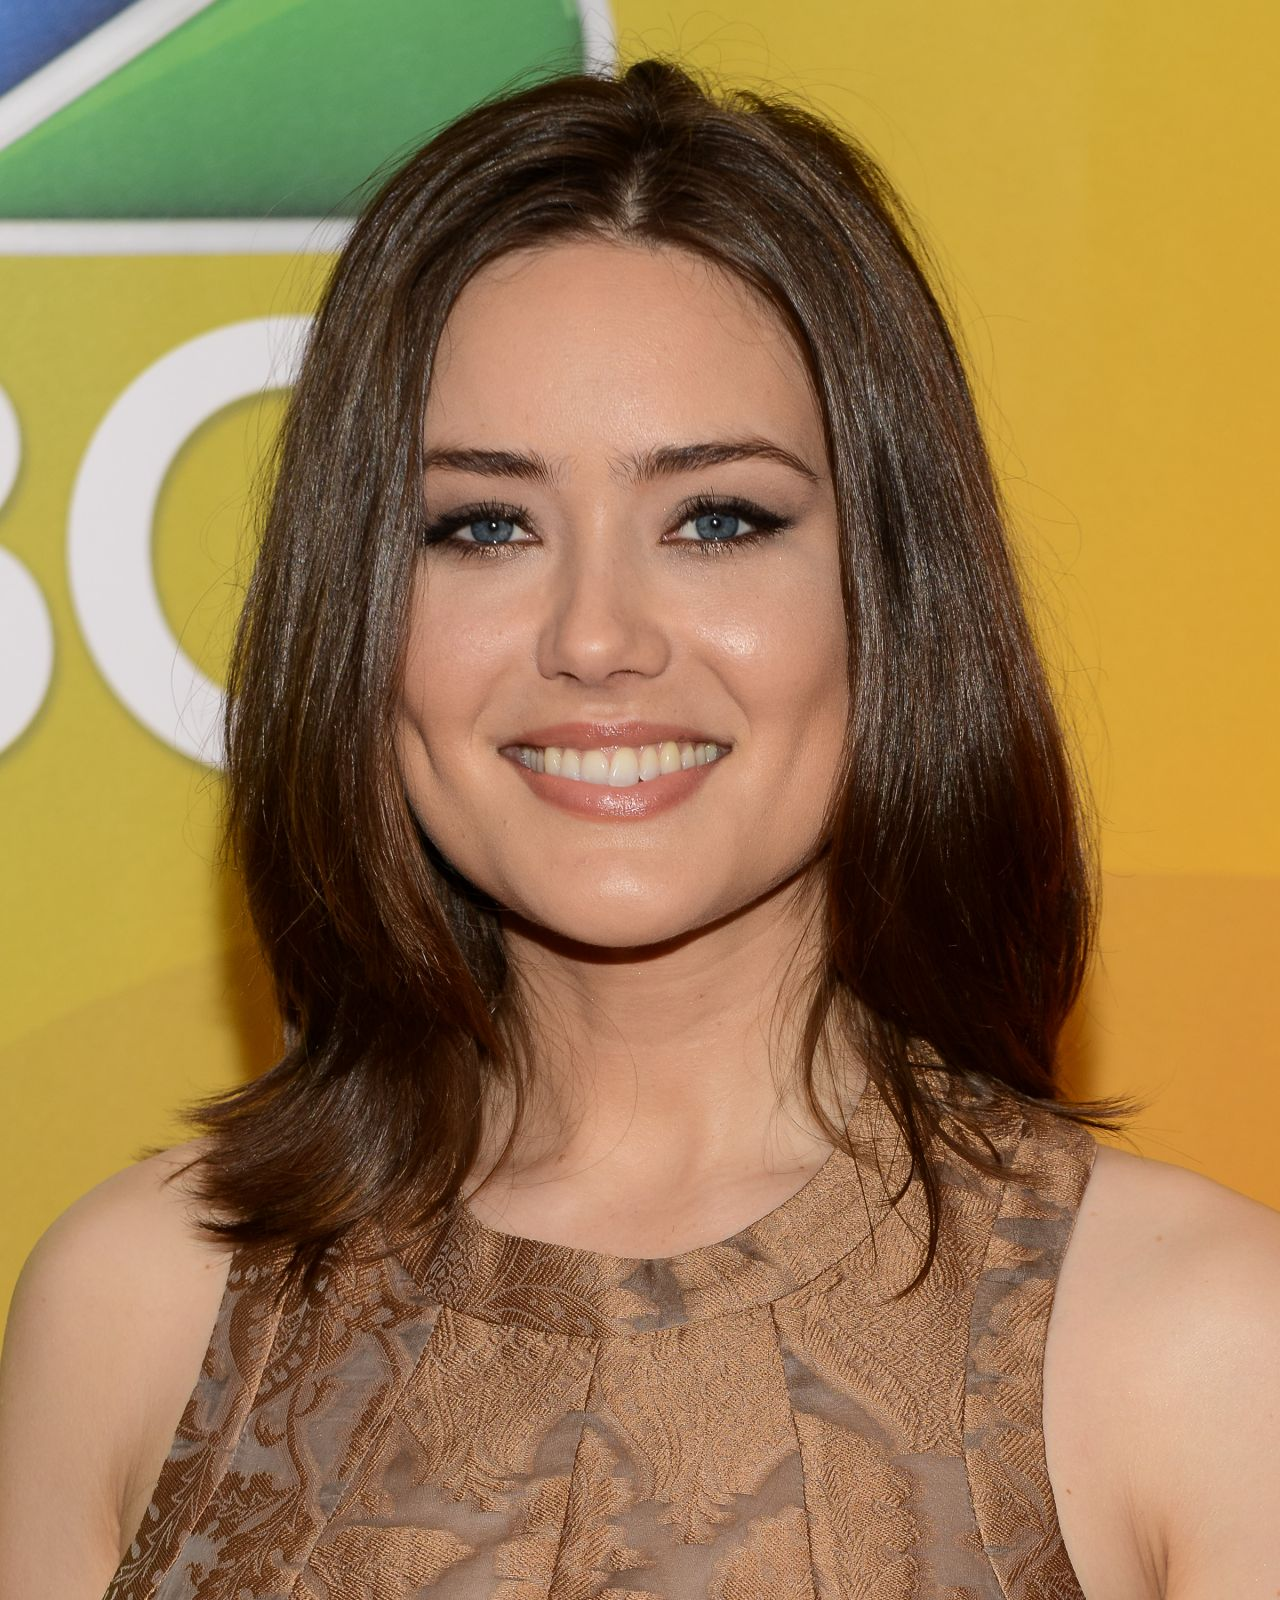 Top Megan Boone Dati